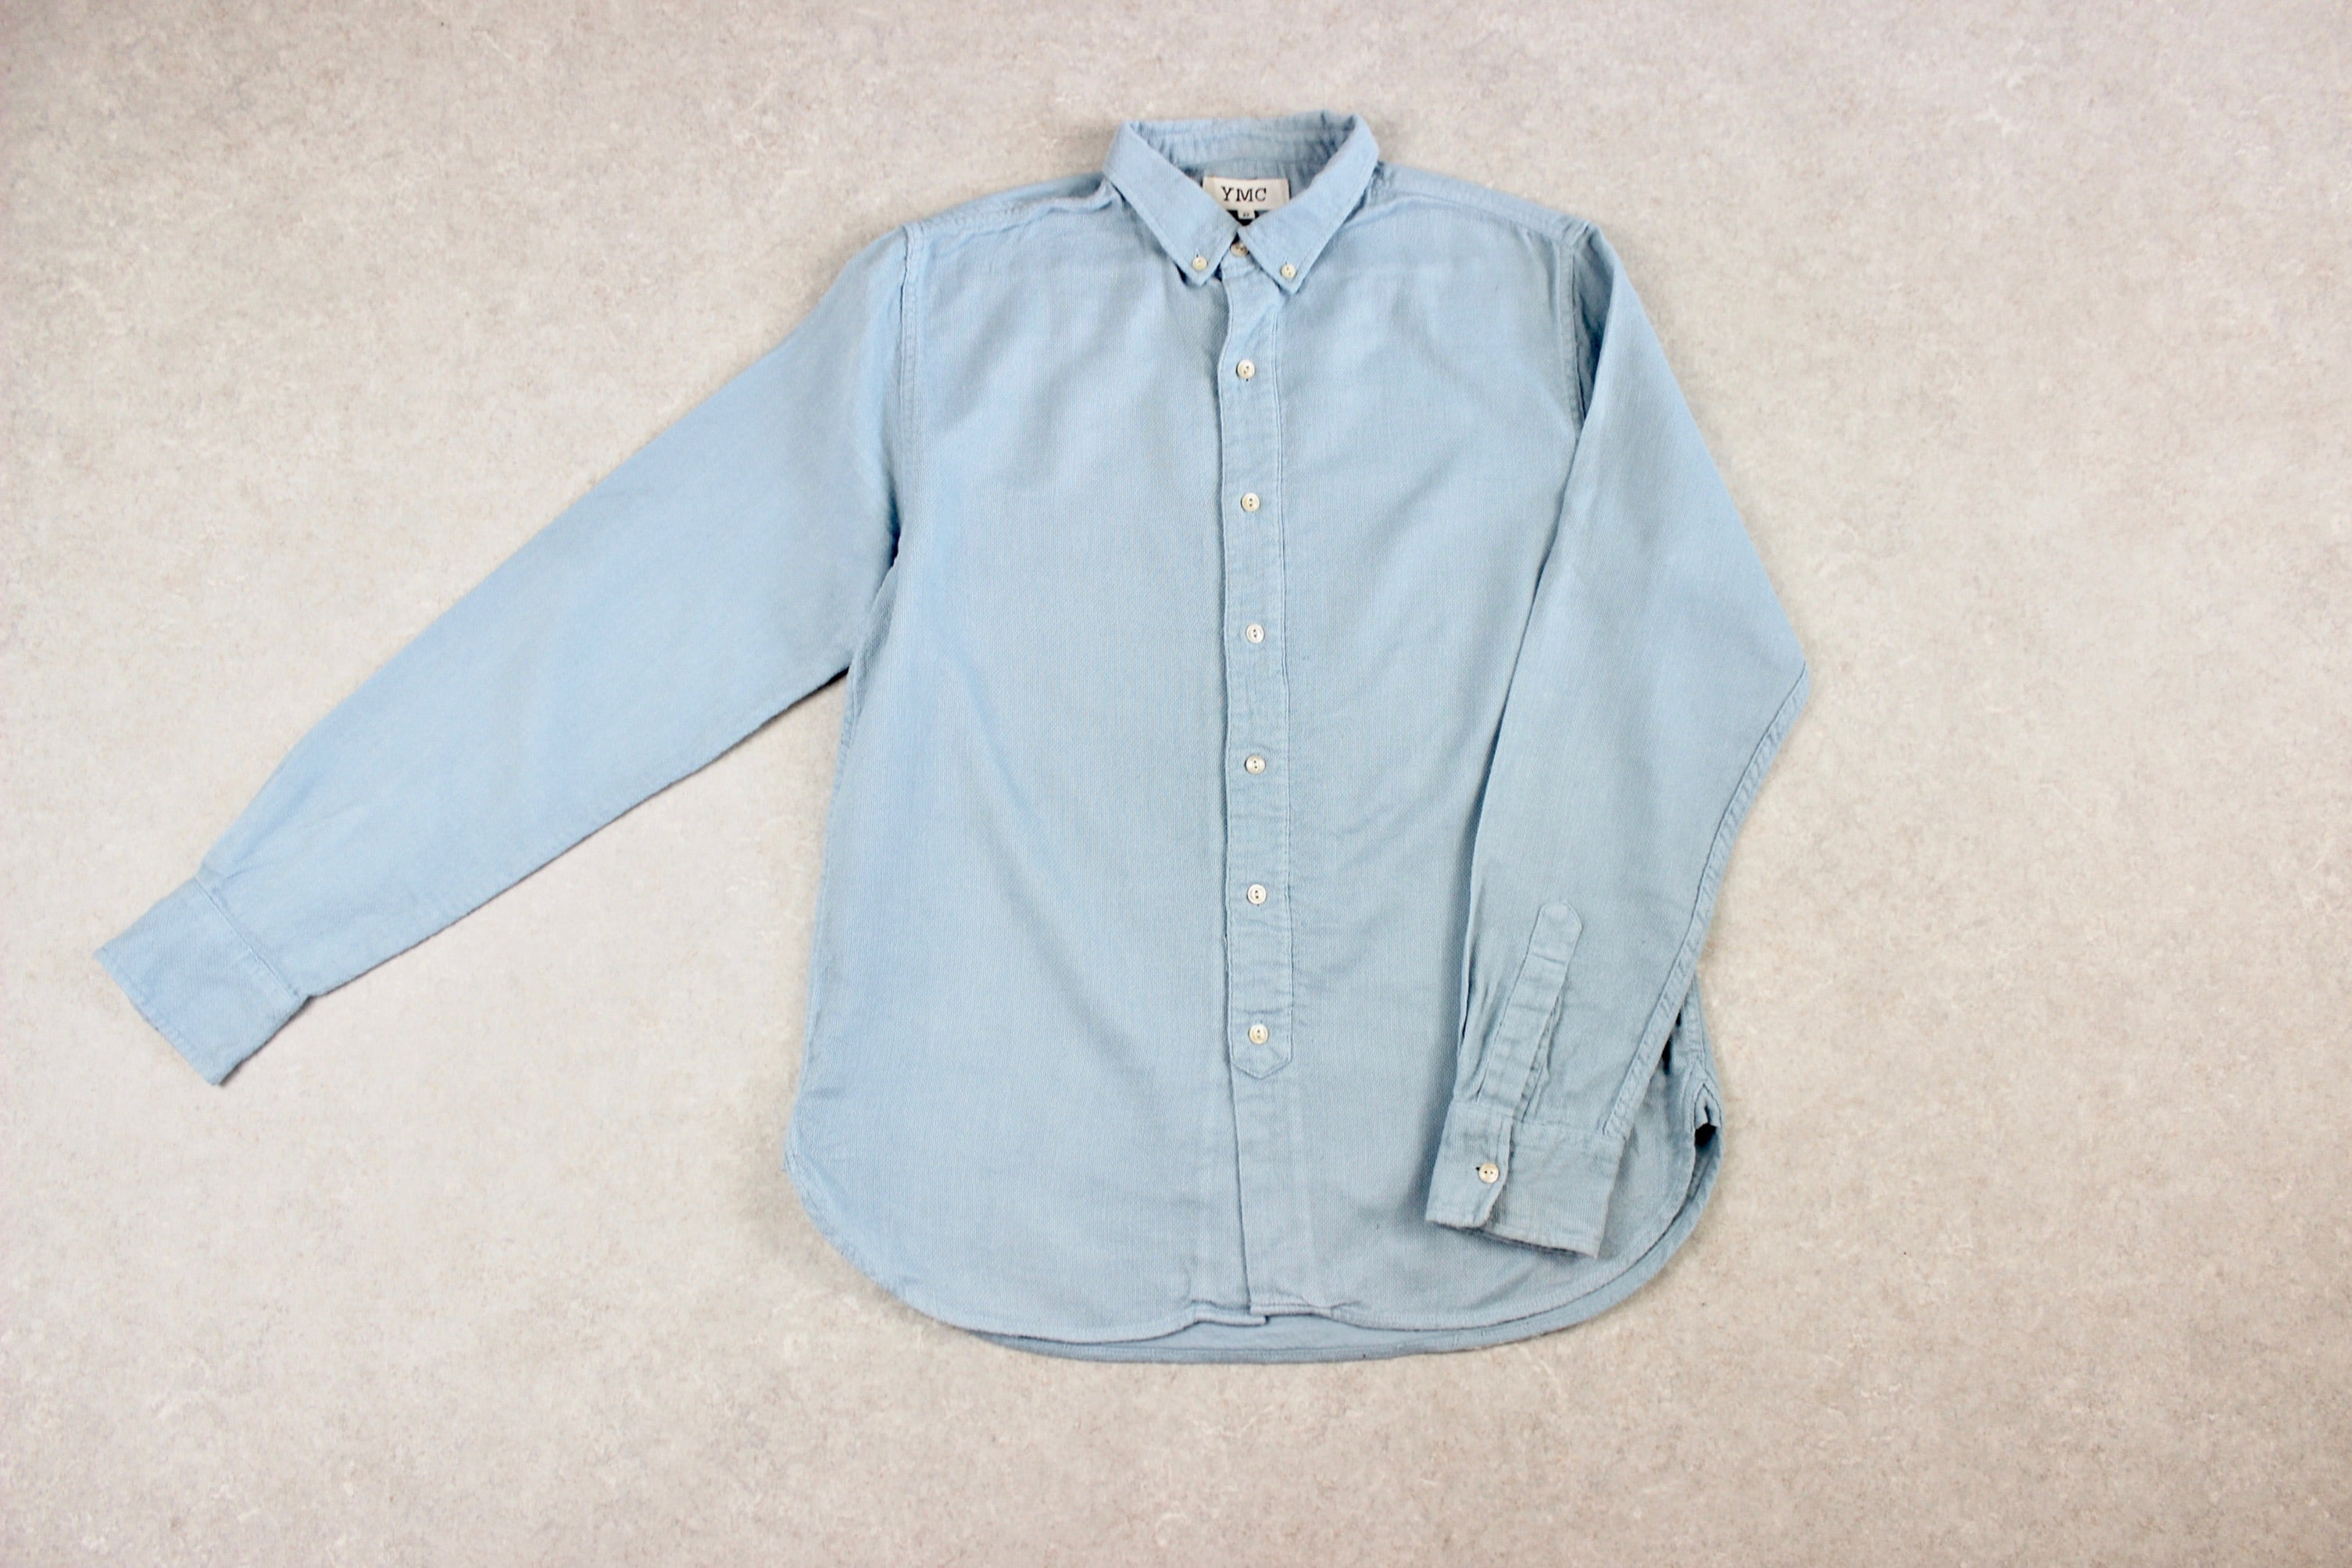 YMC - Shirt - Blue - Small